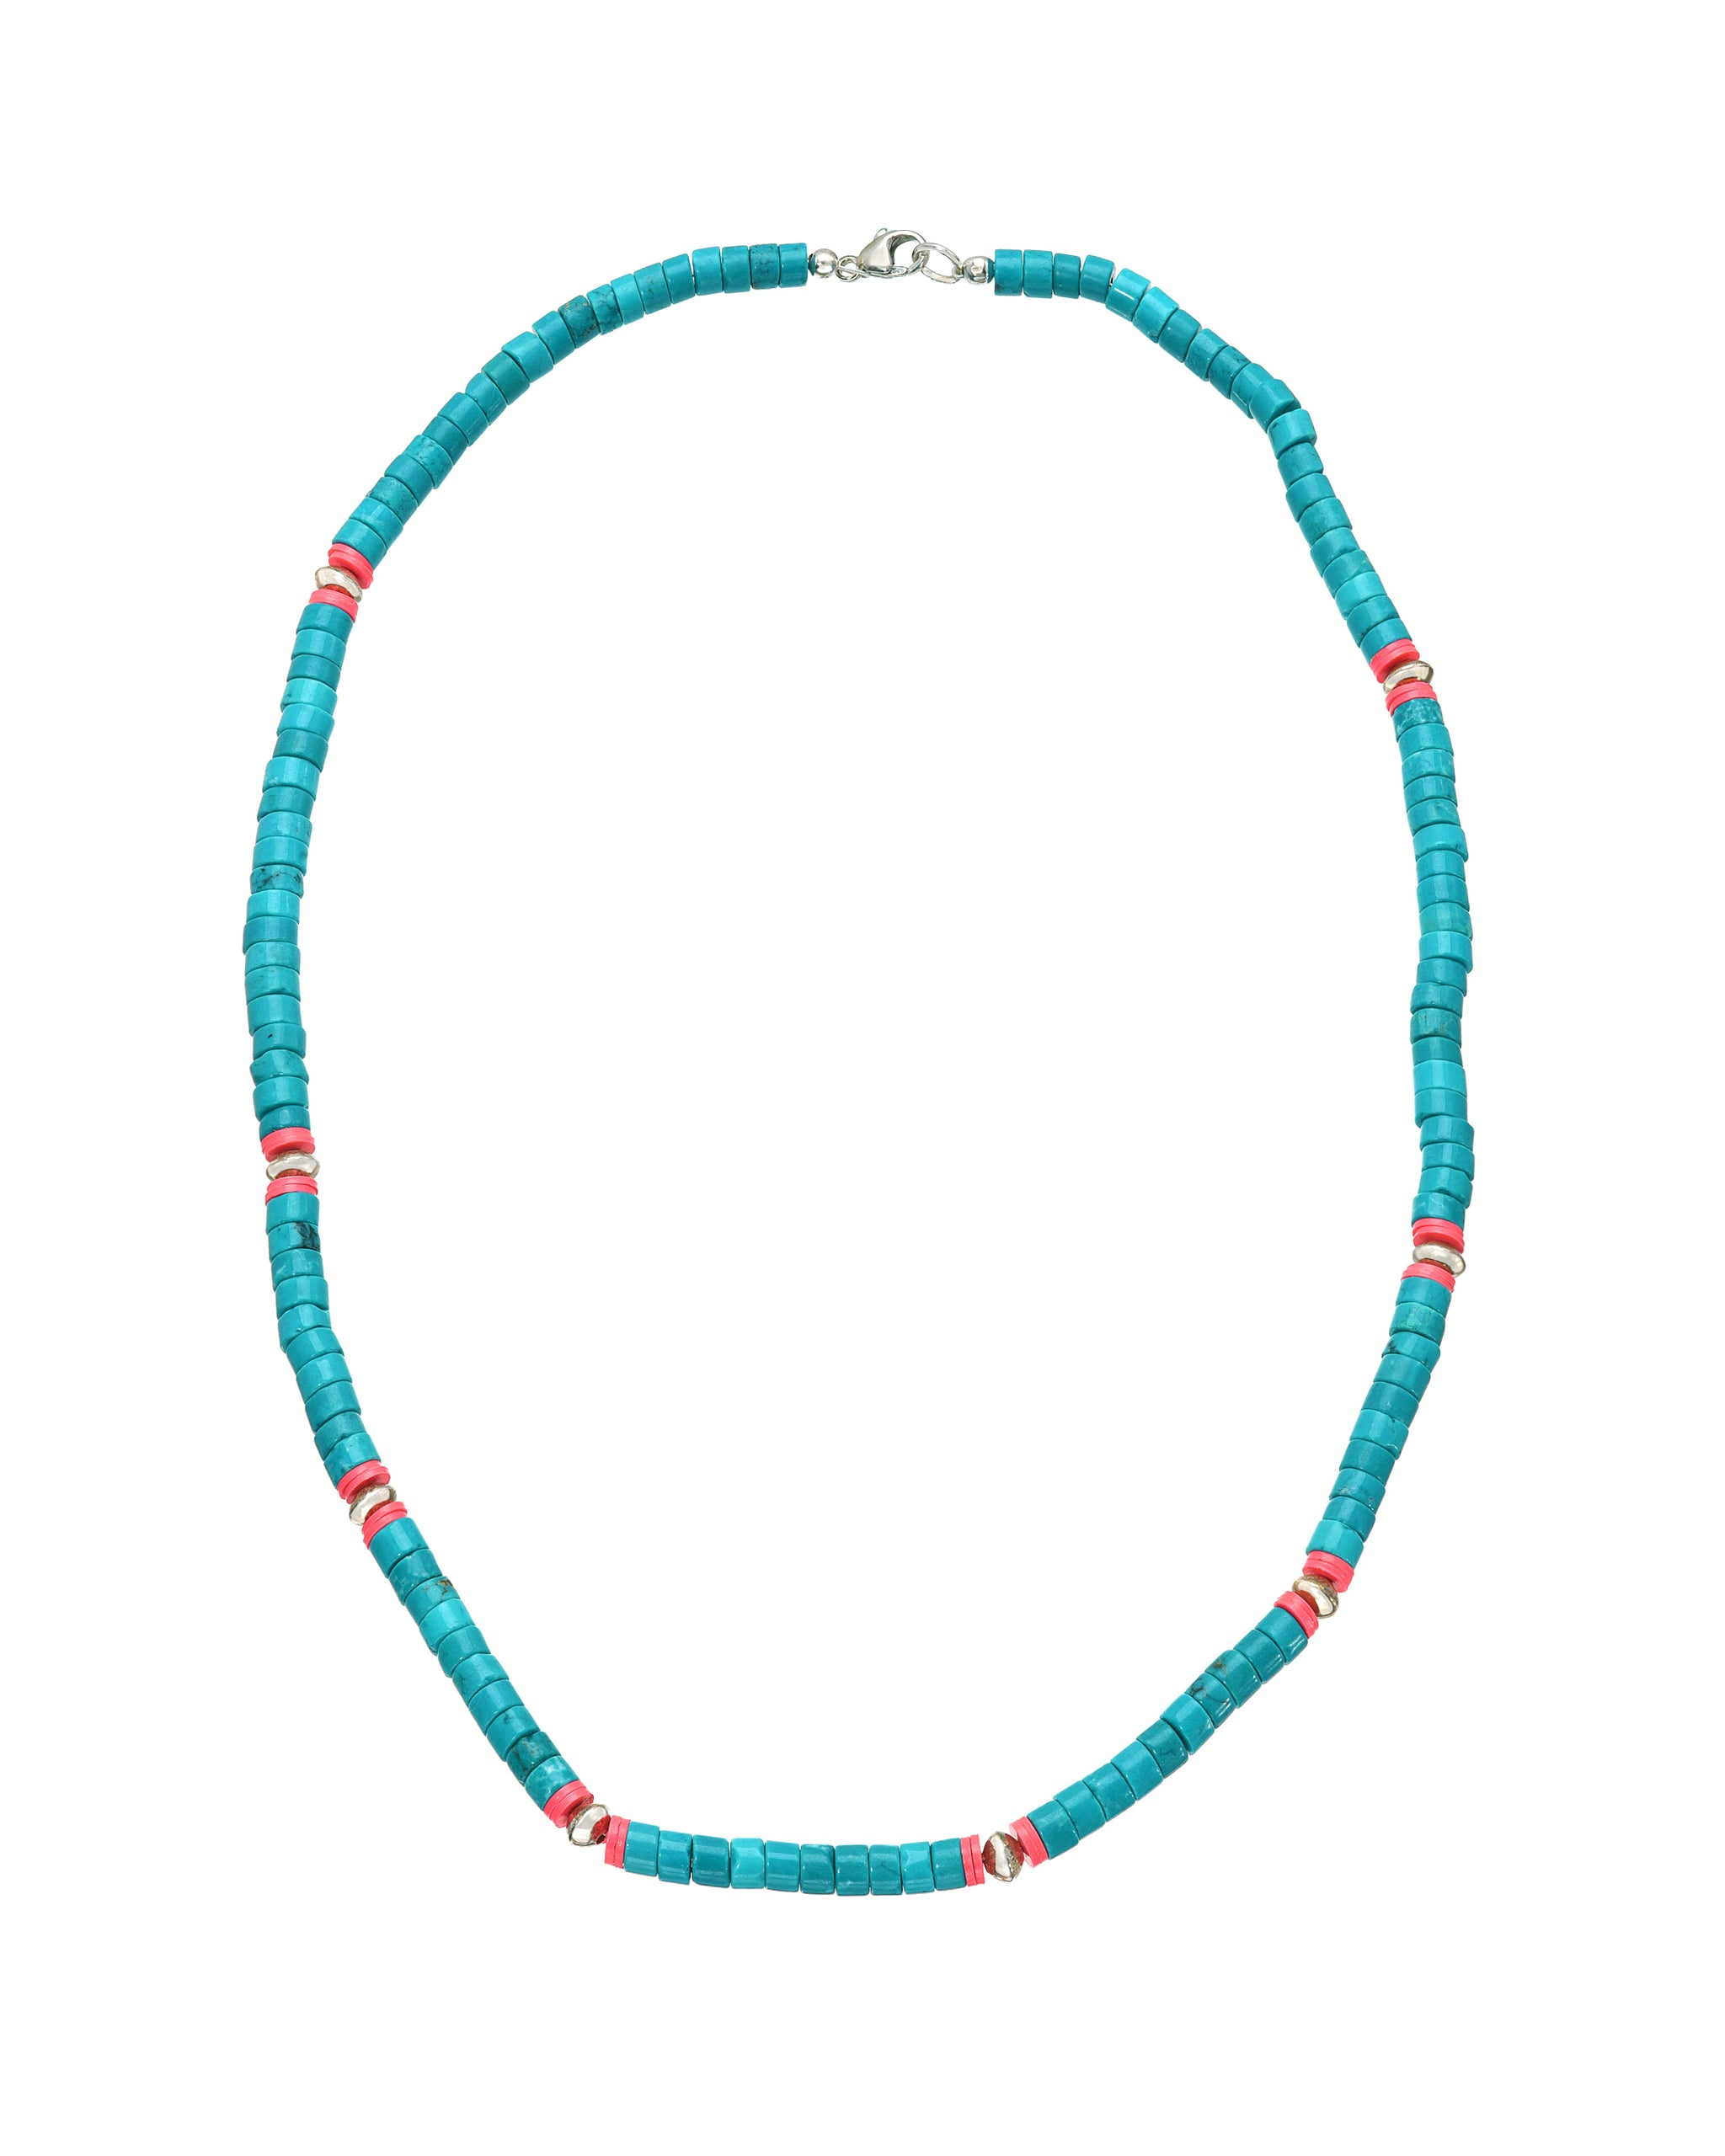 San Miguel Necklace, Turquoise, Hot Pink and Sterling Silver  Beaded necklace, handmade by Turquoise and Tobacco in Los Angeles California